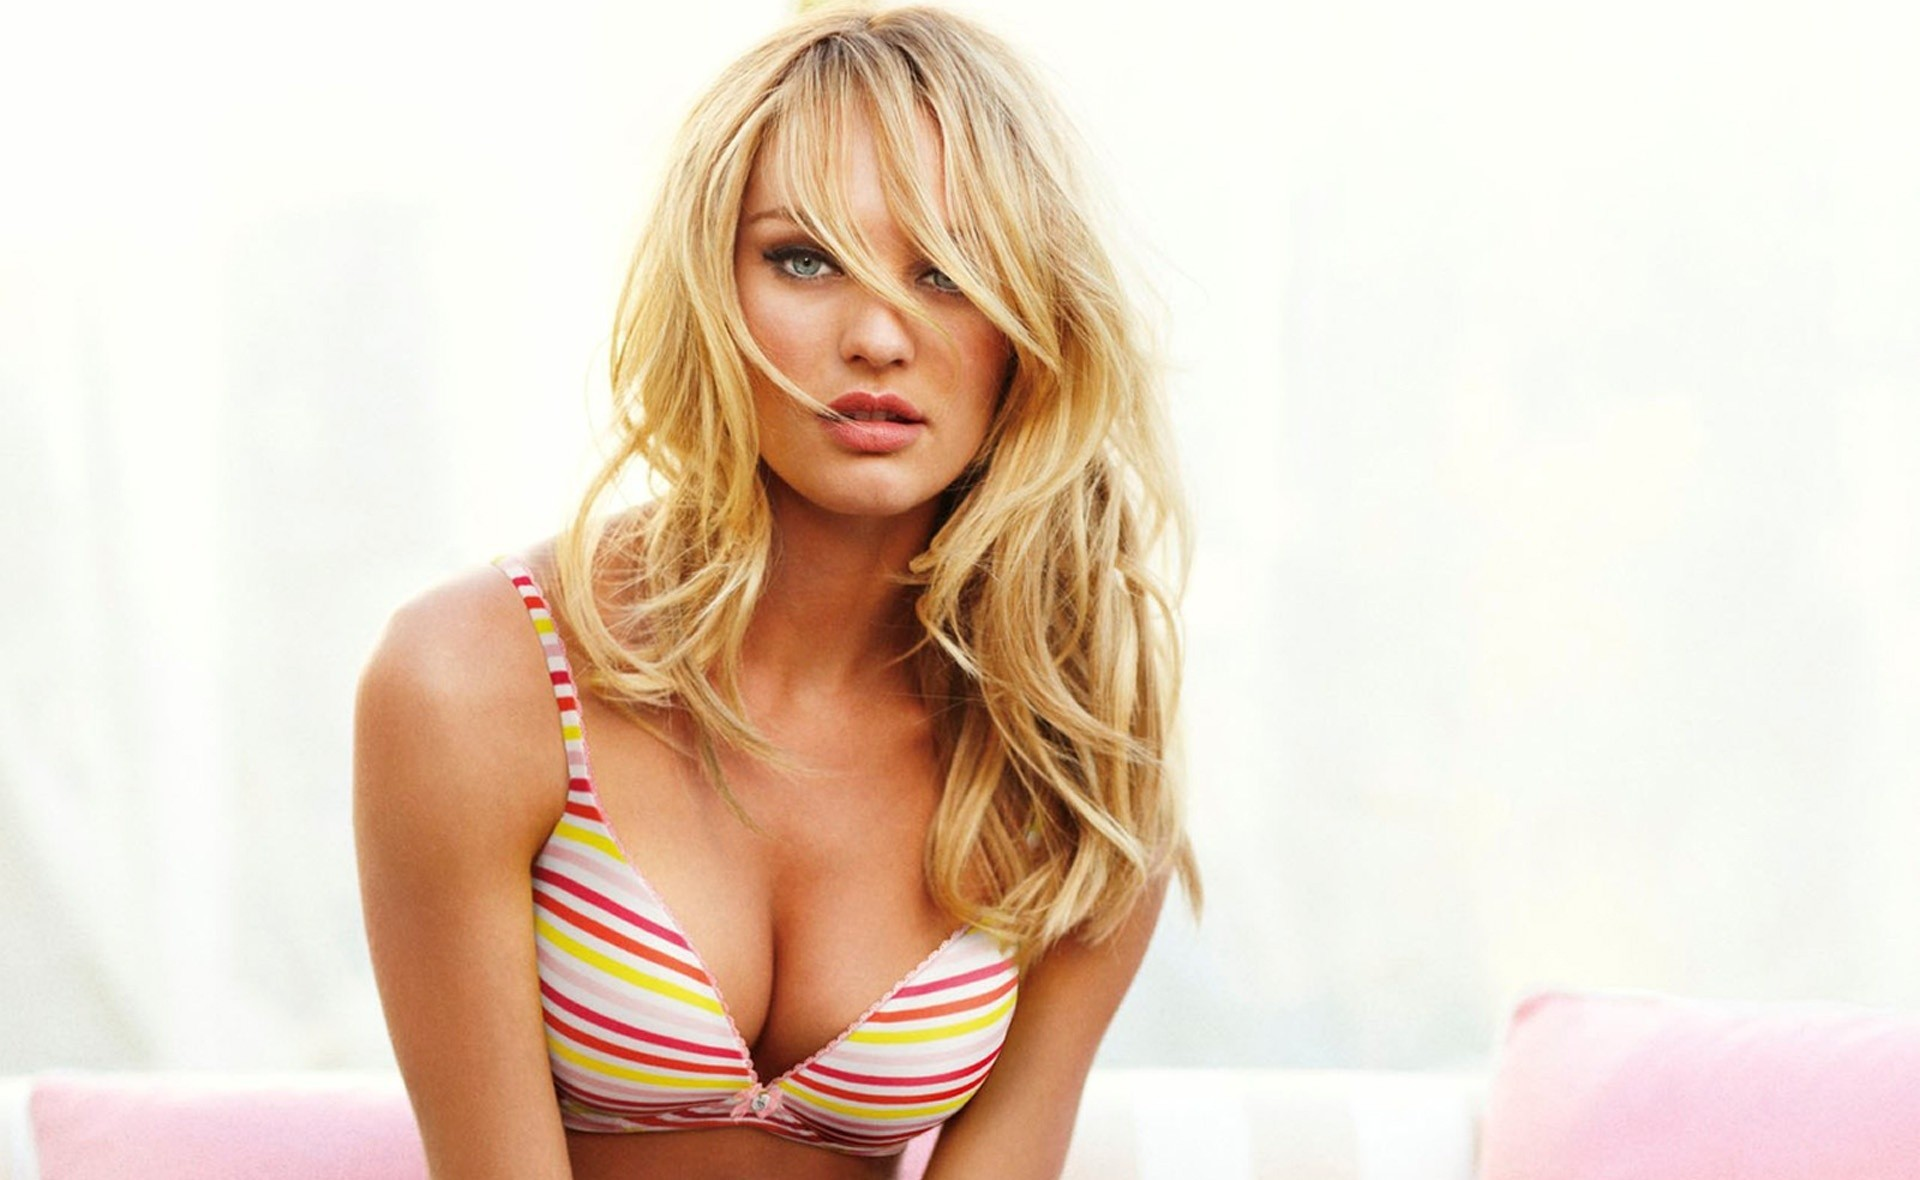 blondes woman models candice HD Wallpaper